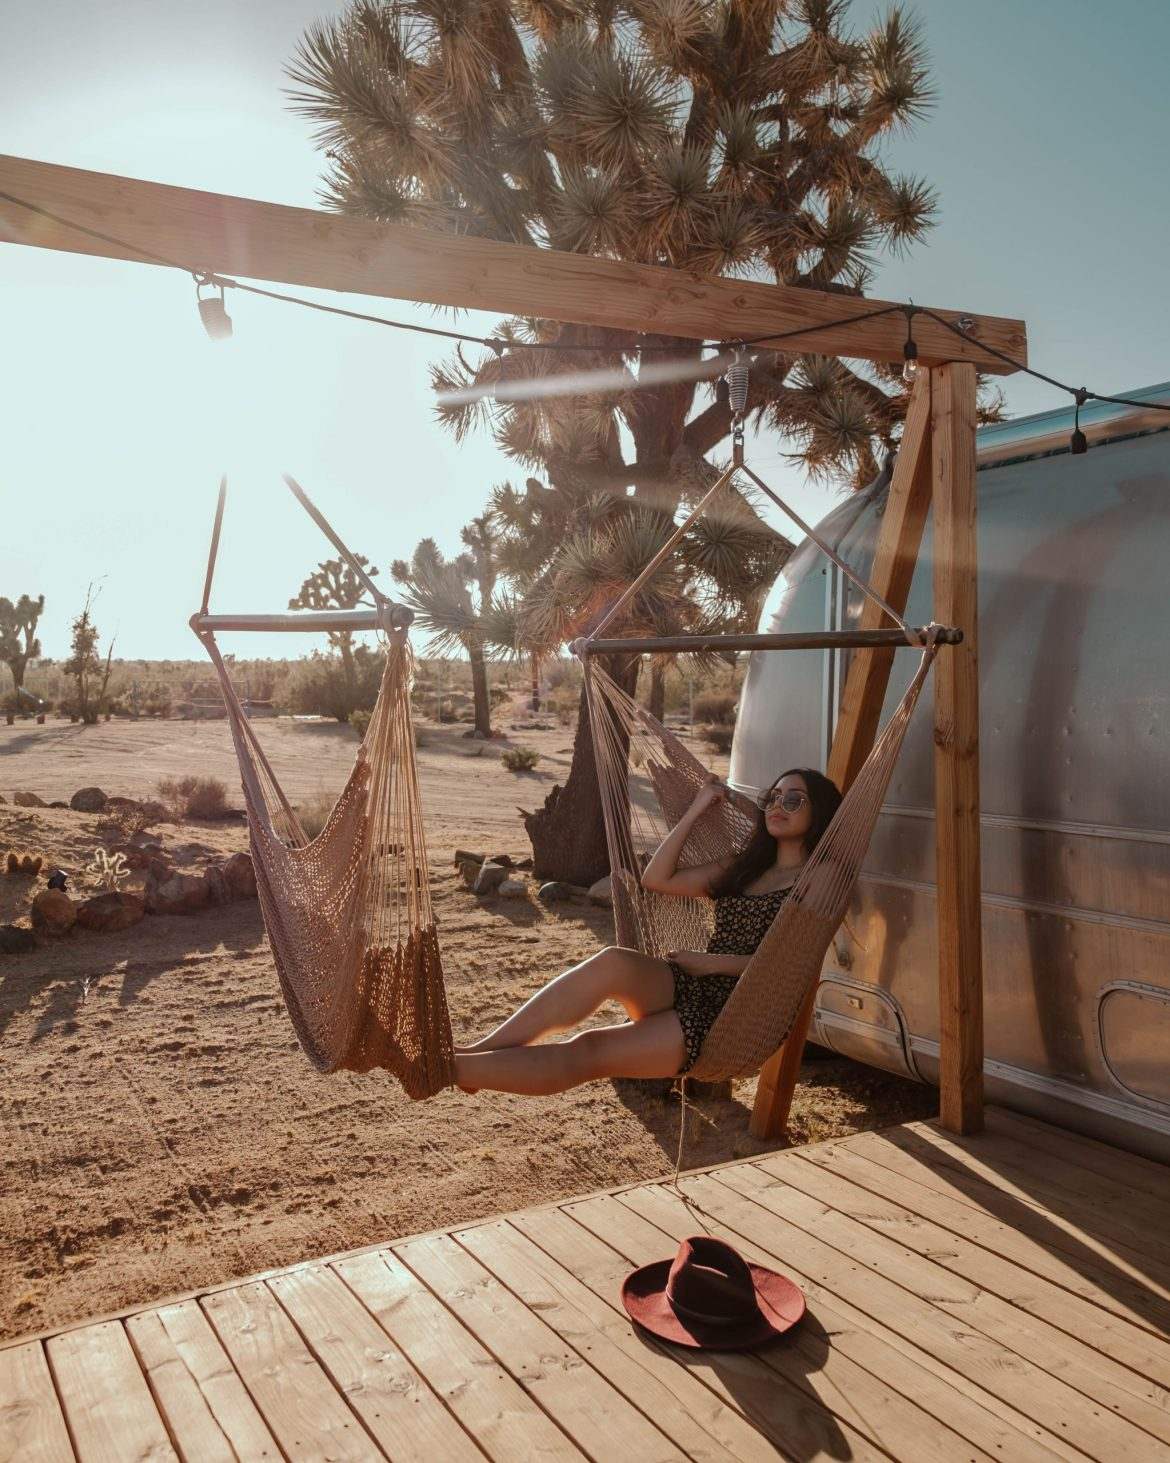 Joshua Tree, California, desert getaway, chill vibes, hammock swing, travel guide